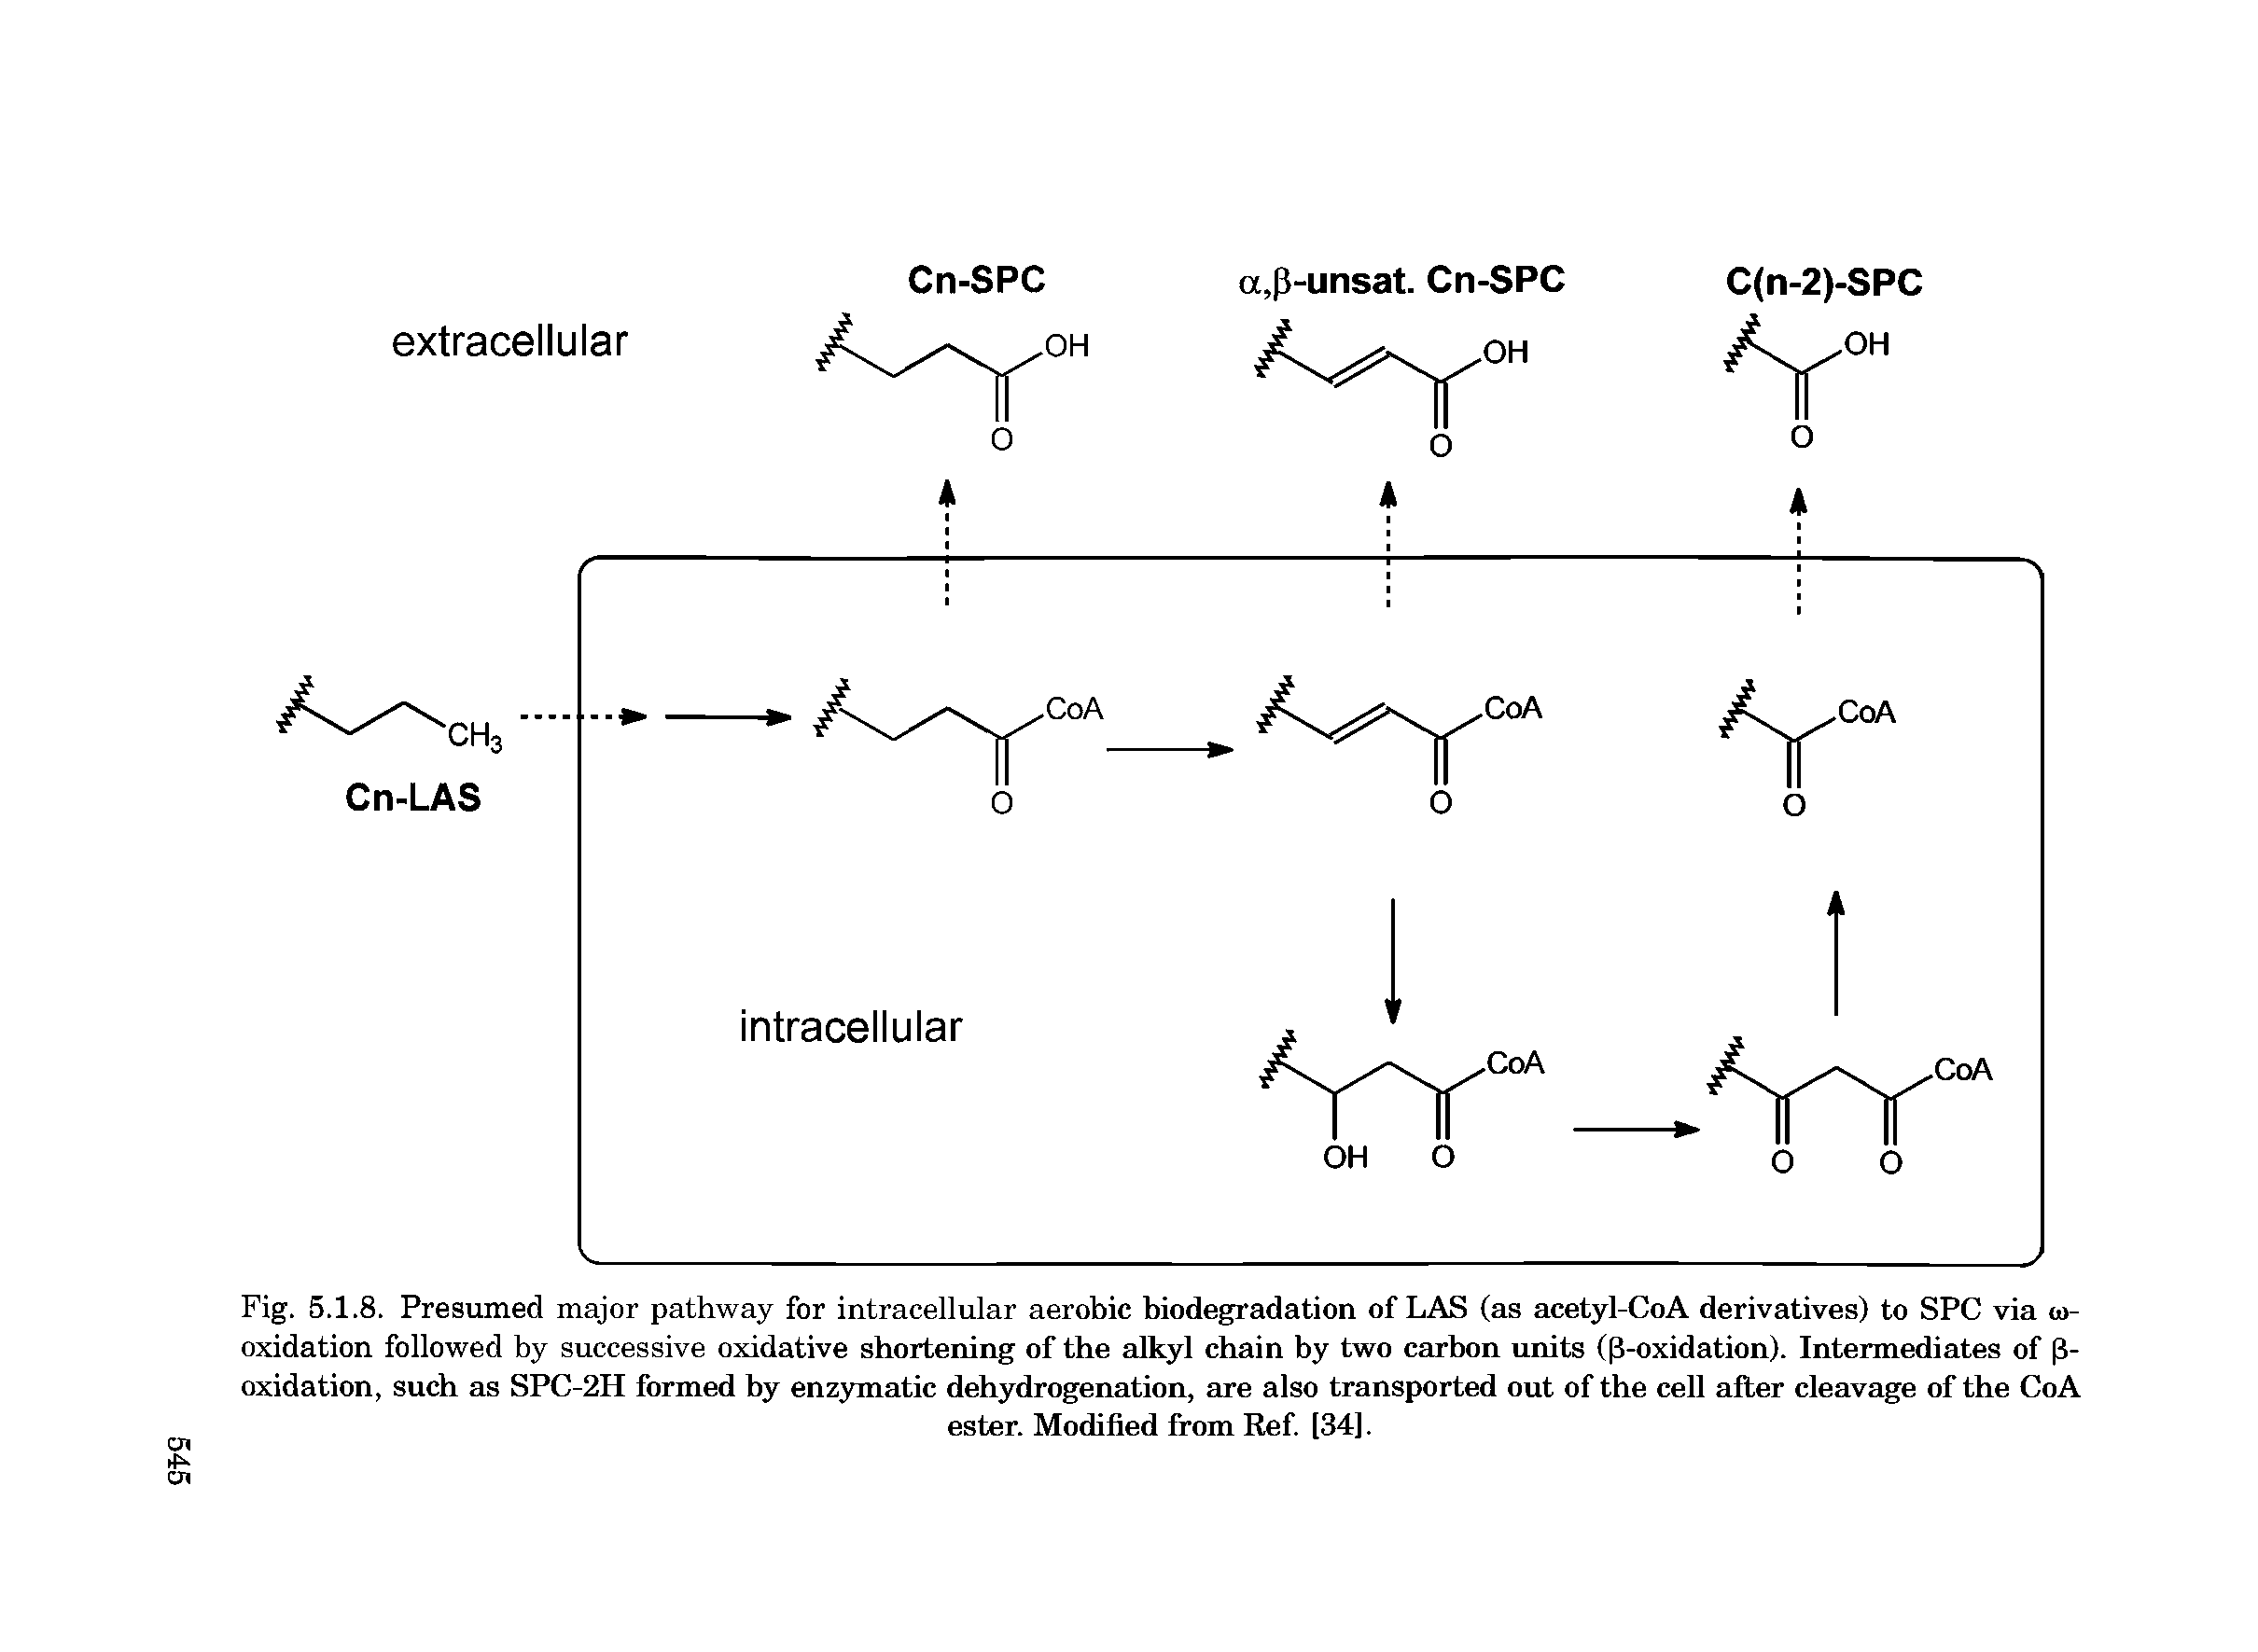 Fig. 5.1.8. Presumed major pathway for intracellular aerobic biodegradation of LAS (as acetyl-CoA derivatives) to SPC via w-oxidation followed by successive oxidative shortening of the alkyl chain by two carbon units ((3-oxidation). Intermediates of 13-oxidation, such as SPC-2H formed by enzymatic dehydrogenation, are also transported out of the cell after cleavage of the CoA...